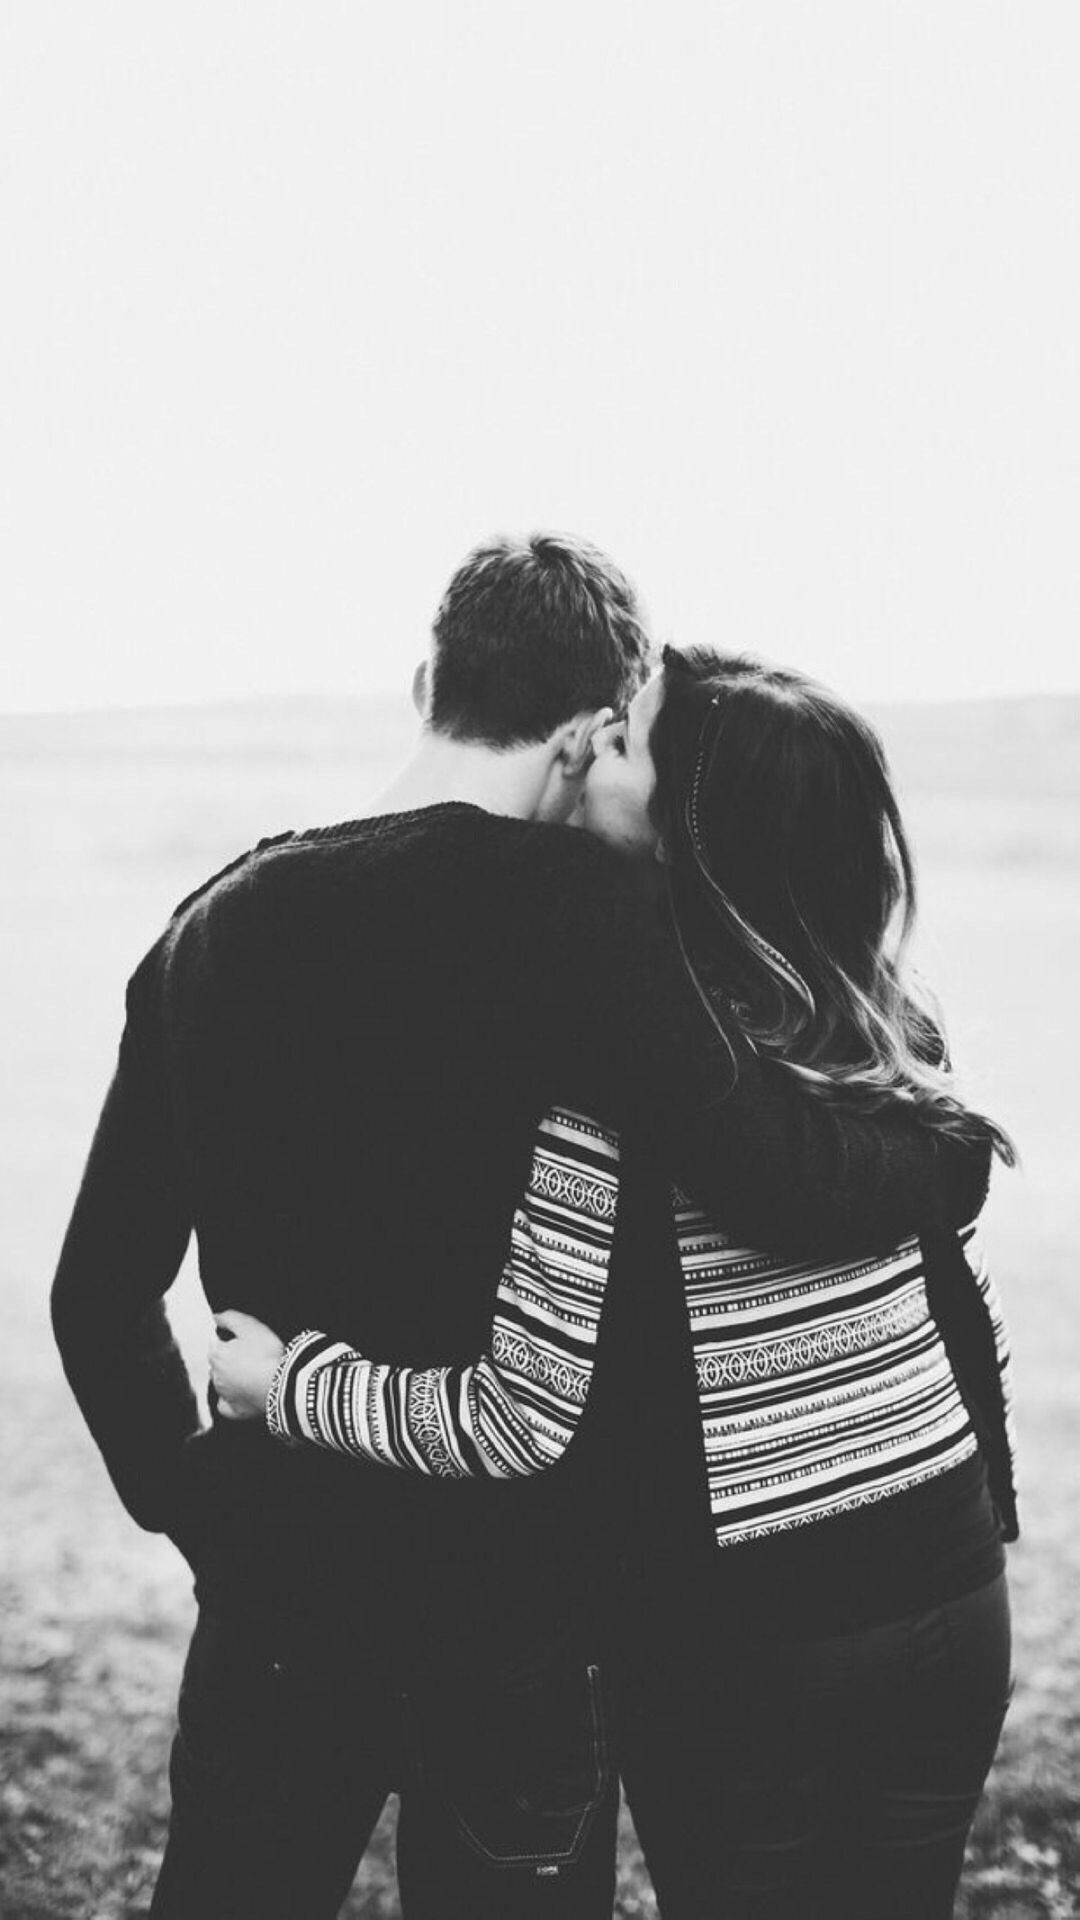 Hugging Couple Black And White 1080x1920 Download Hd Wallpaper Wallpapertip See high quality wallpapers follow the tag #wallpaper hd cute couple. hugging couple black and white